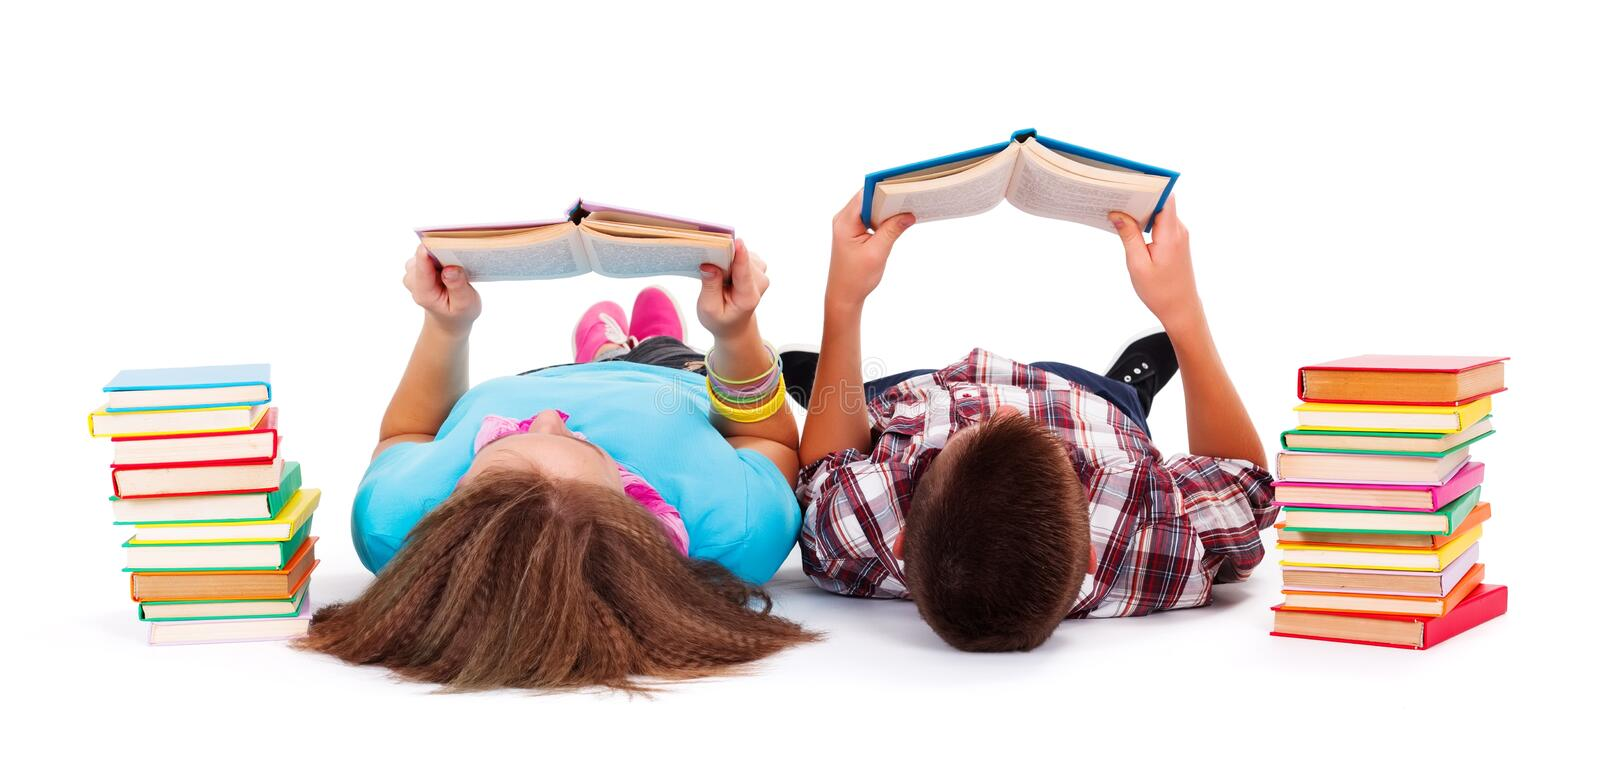 Teens reading books royalty free stock photos